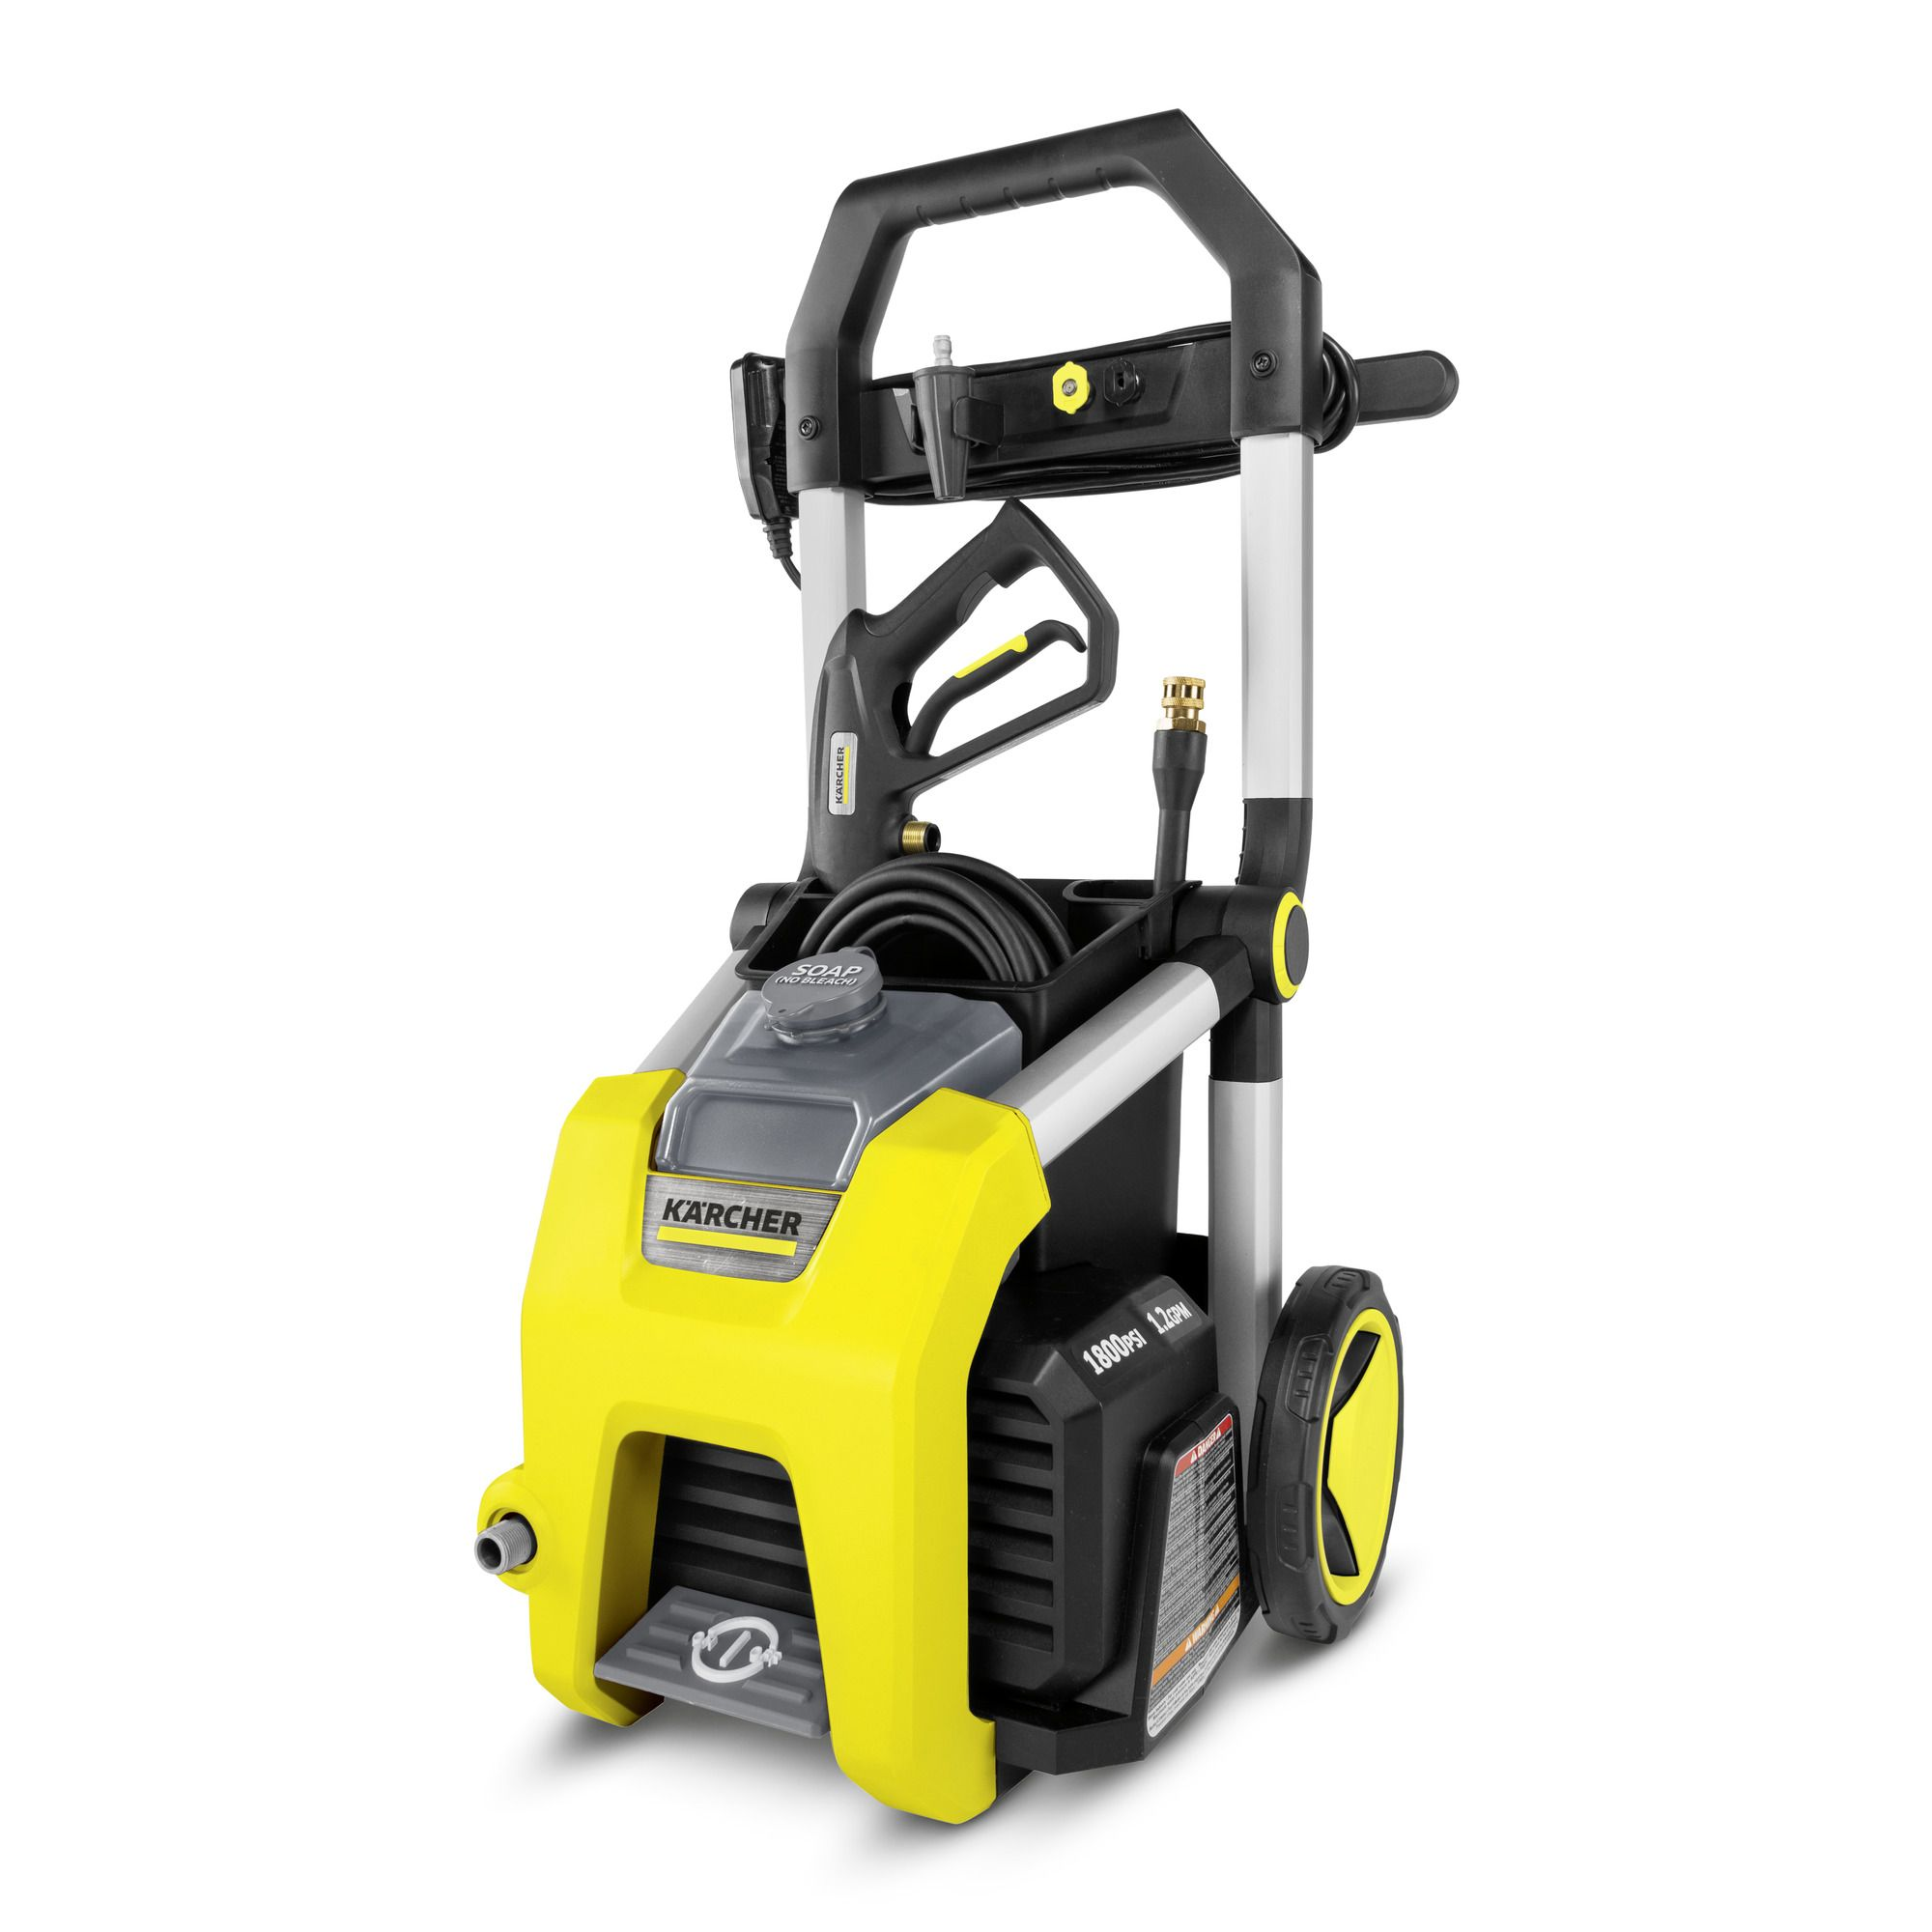 K1800 With Images Best Pressure Washer Electric Pressure Washer